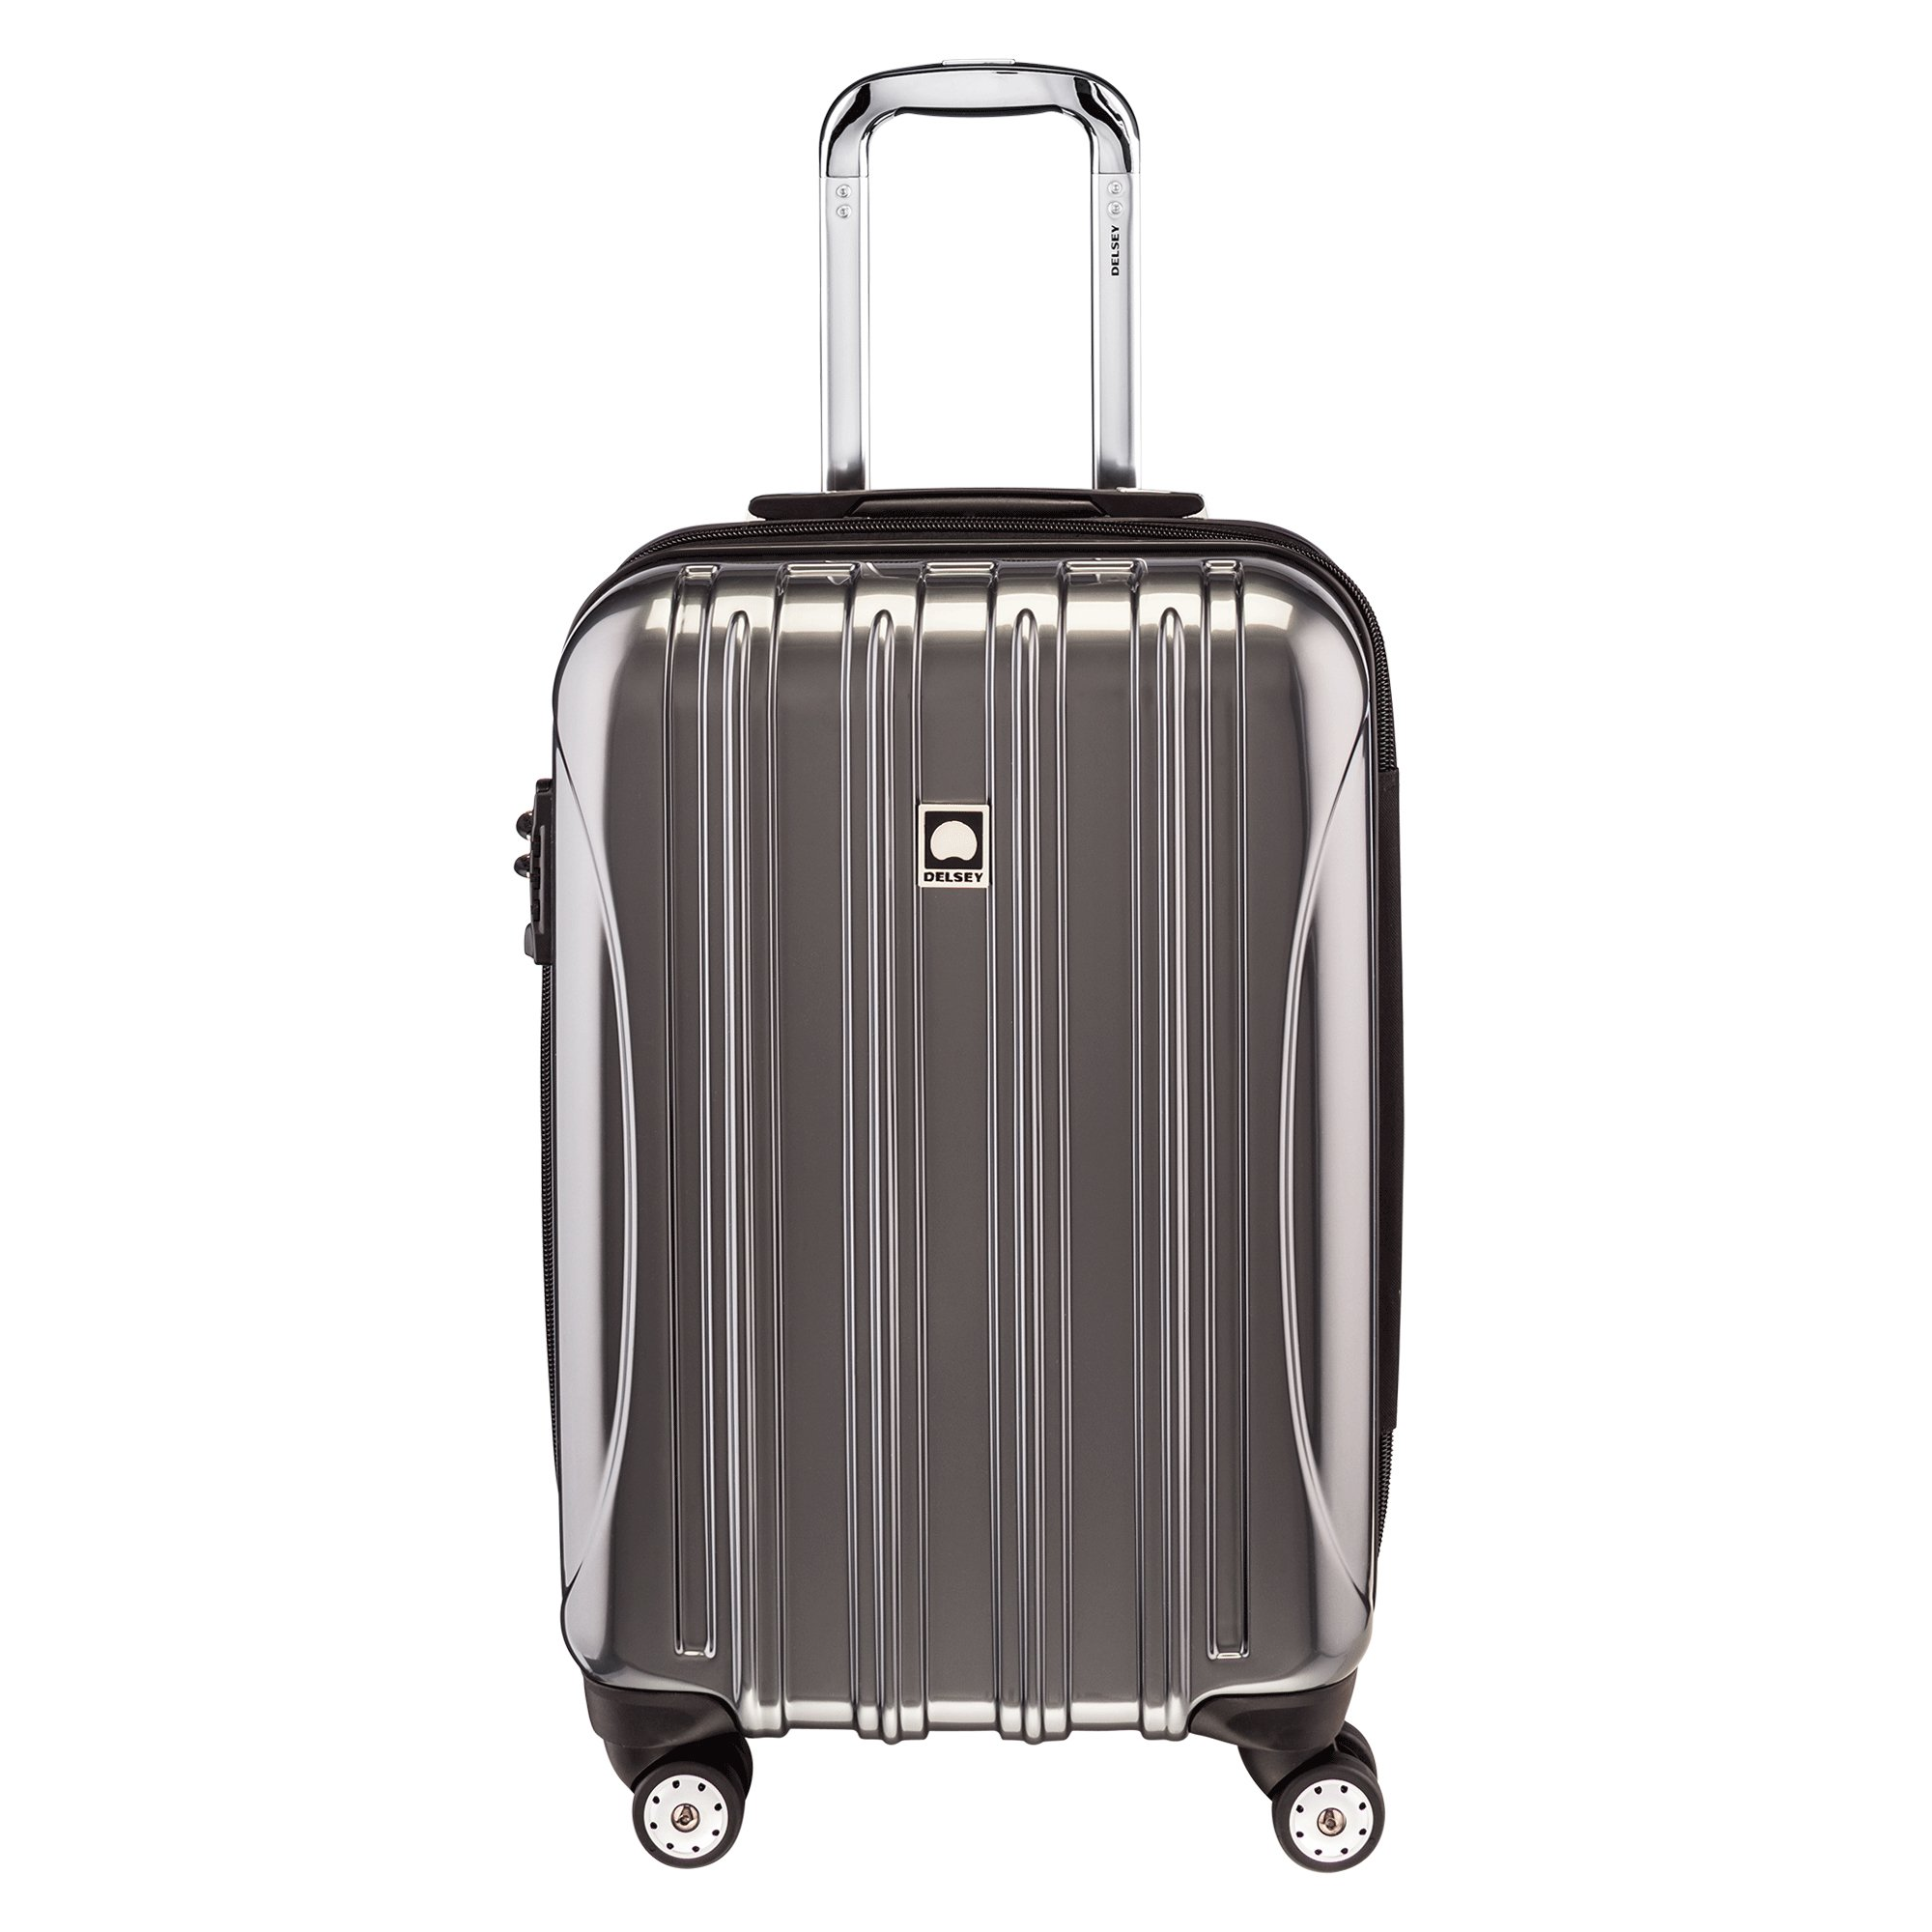 Delsey Luggage Helium Aero Carry-On Spinner Trolley, Titanium, One Size